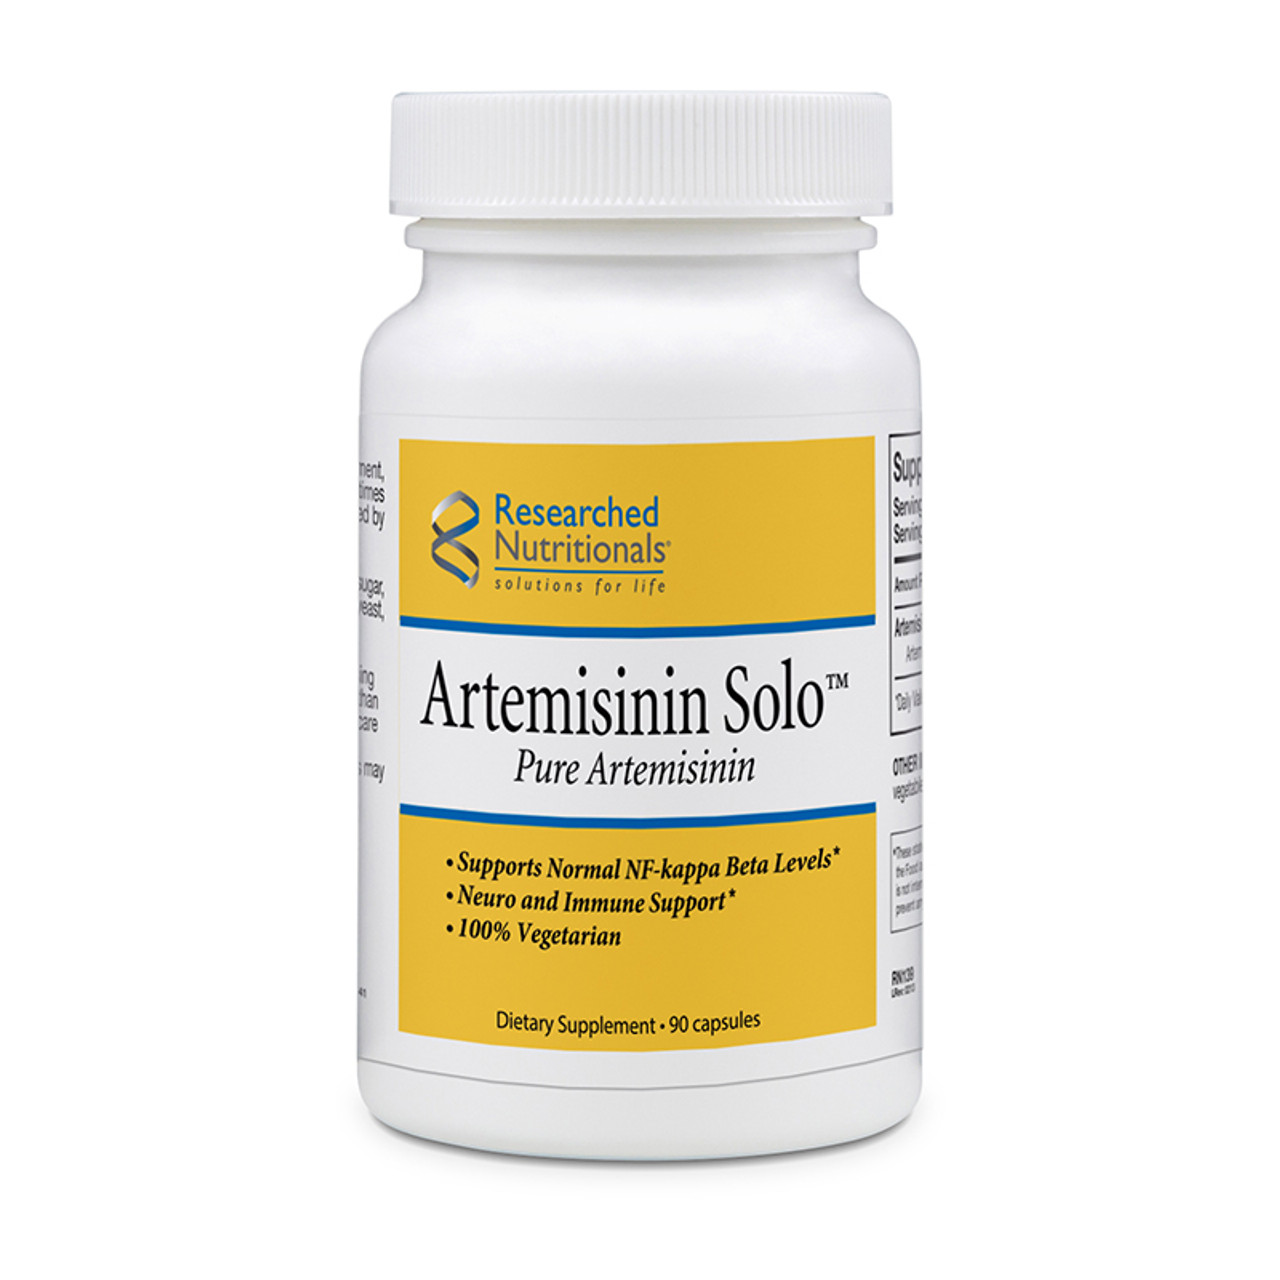 Researched Nutritionals Artemisinin Solo Pure Artemisinin 90 caps